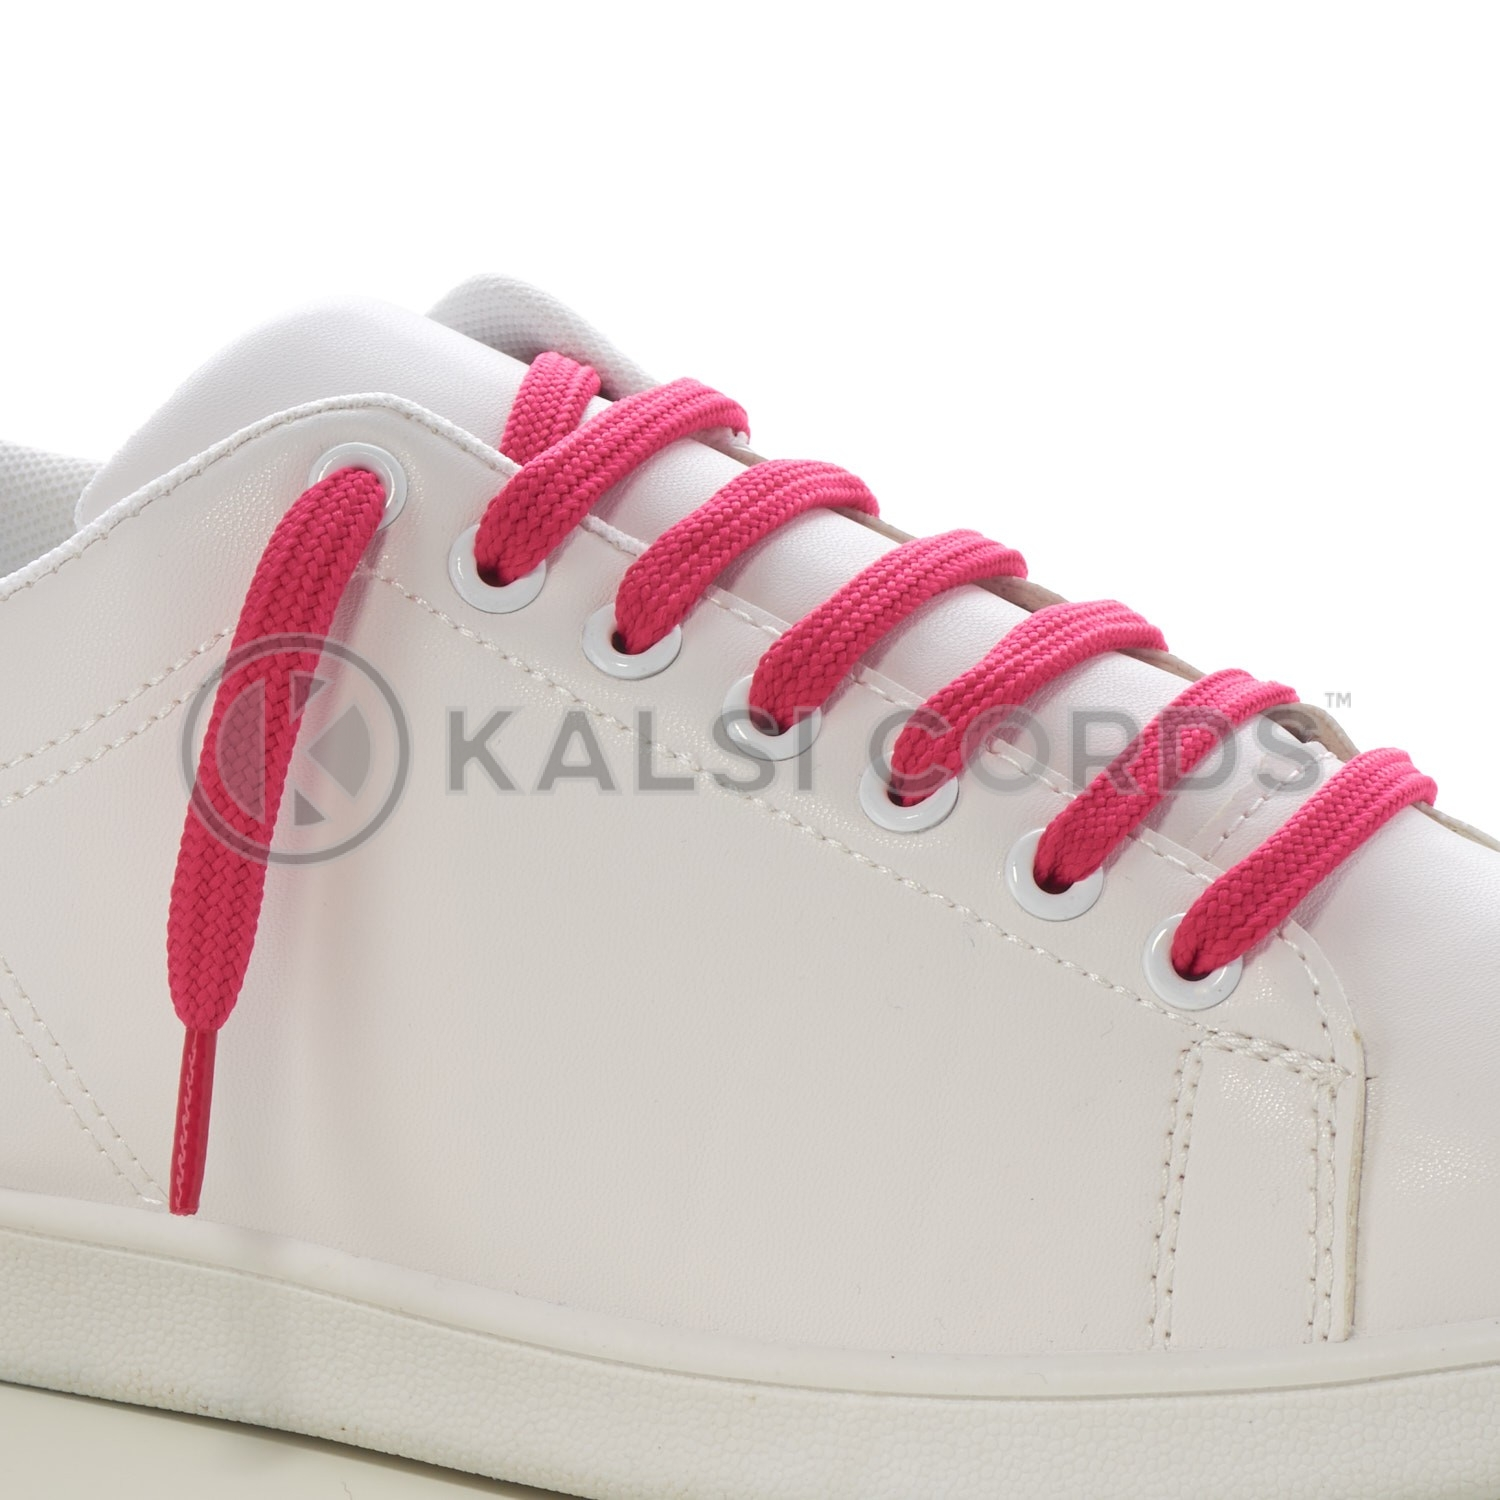 9mm Flat Shoe Laces Tubular Cerise Pink PG391 Sports Trainers Boots Footwear Drawstring Drawcord